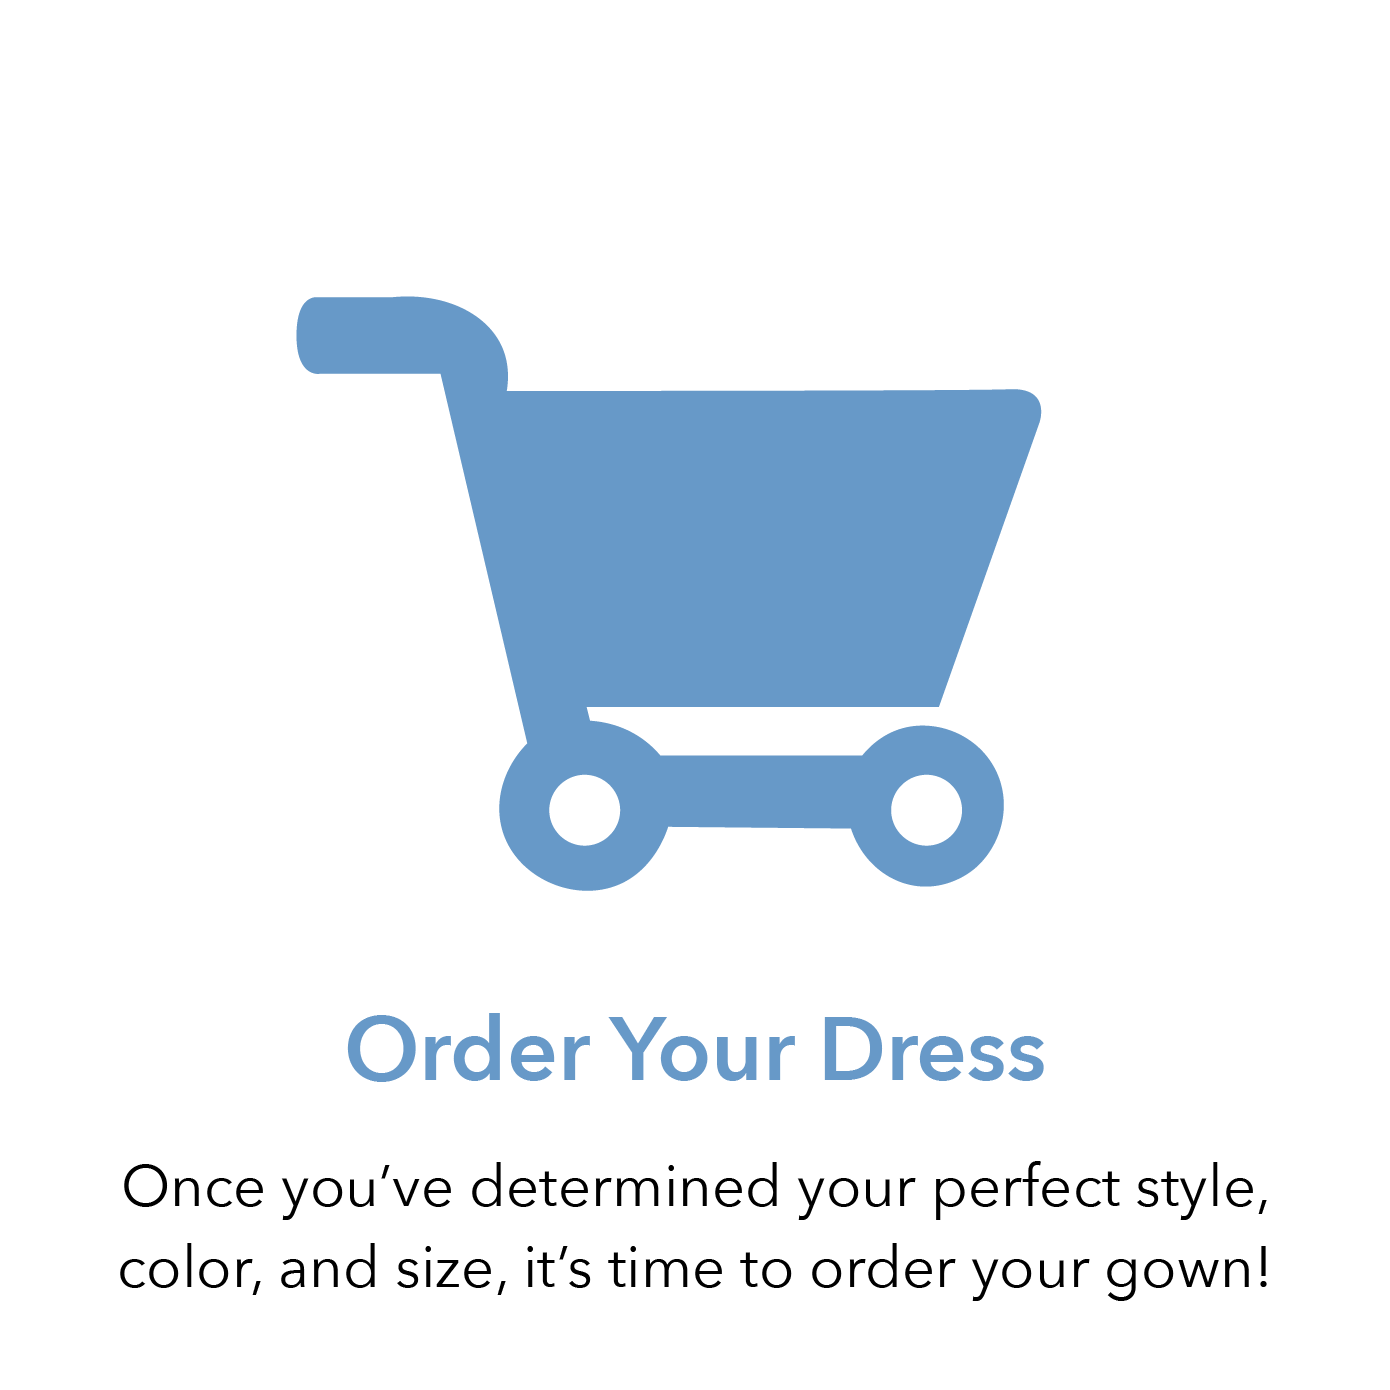 Order Your Dress